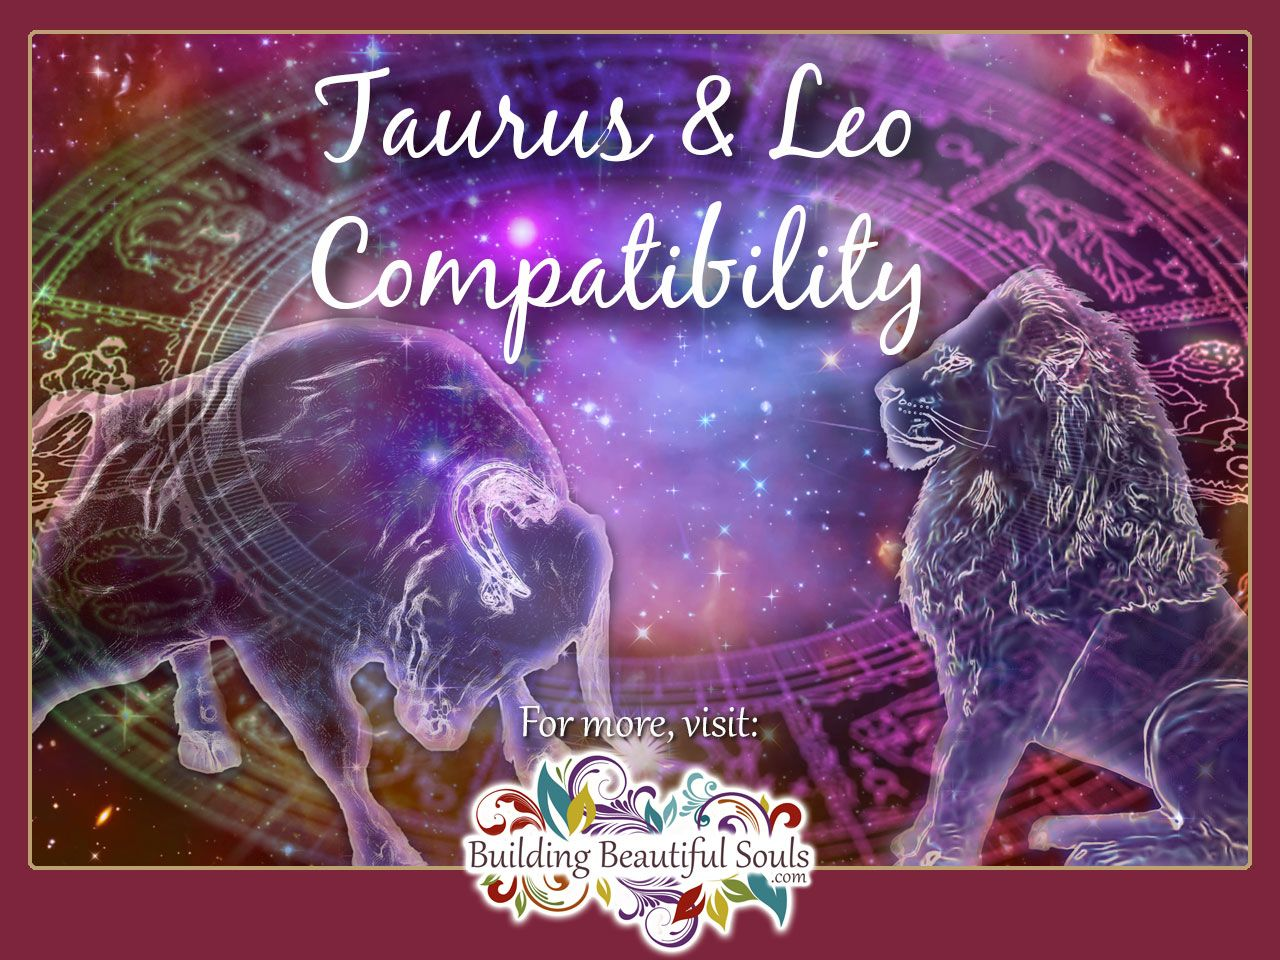 Taurus and leo compatibility relationship